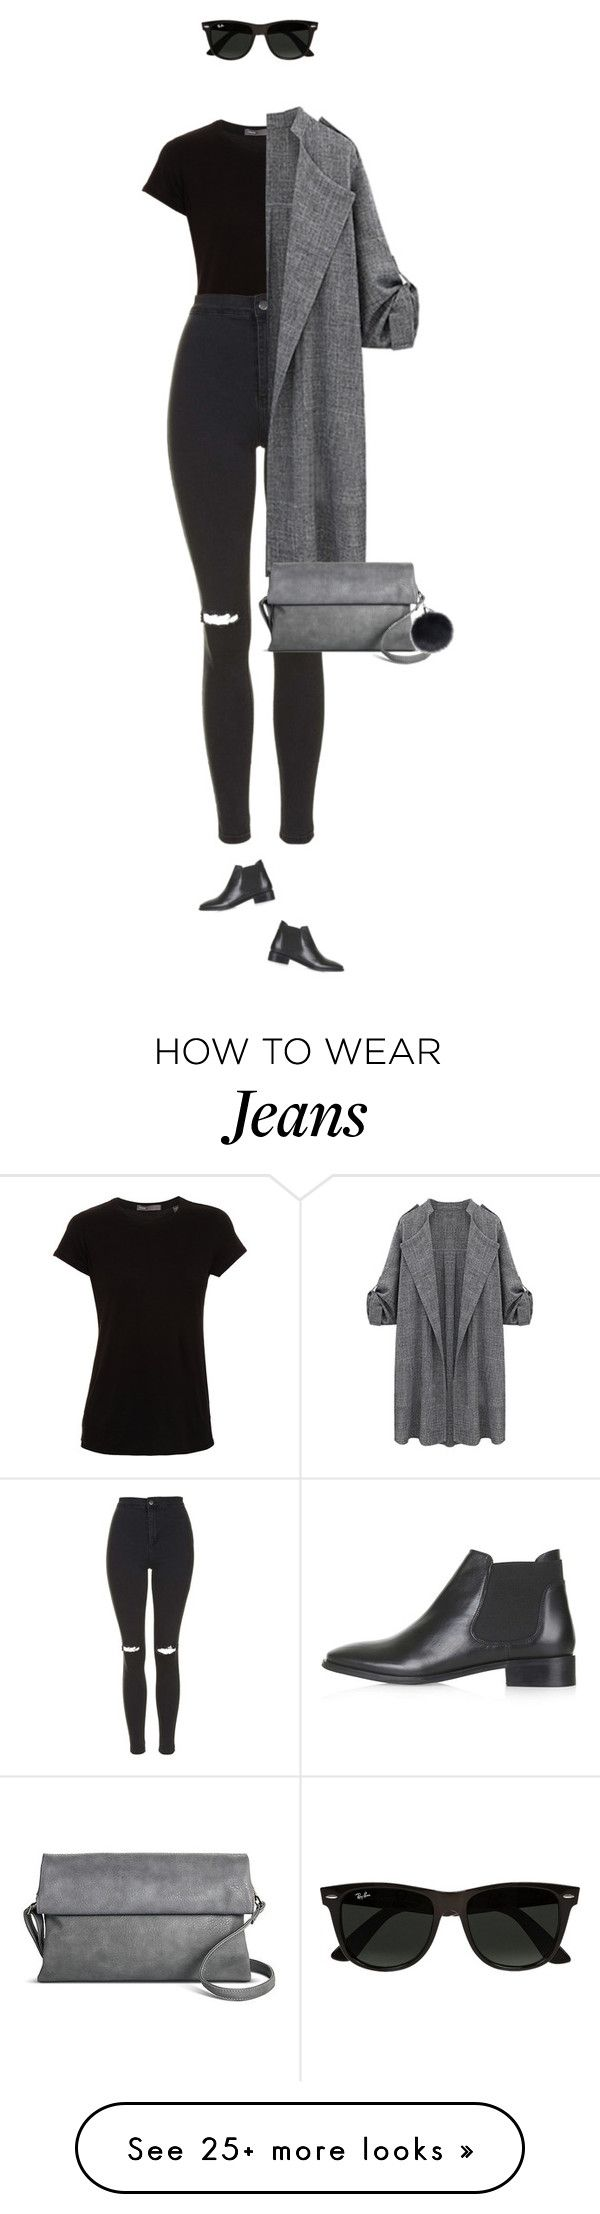 """Everyday chic look !"" by azzra on Polyvore featuring Vince, Topshop, Street Level, Ray-Ban, women's clothing, women, female, woman, misses and juniors"